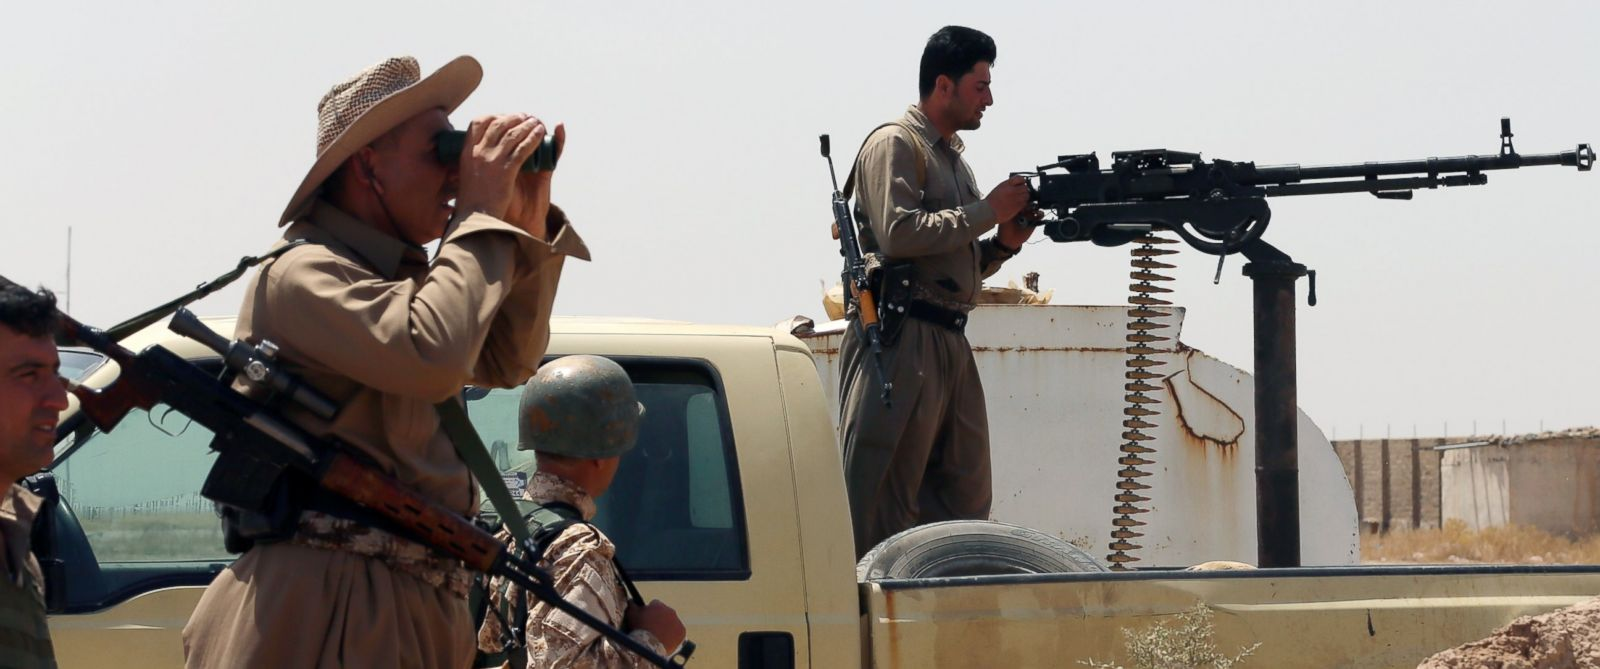 PHOTO: Iraqi Kurdish forces take position as they fight jihadist militants from the Islamic State of Iraq and the Levant (ISIL) on June 29, 2014 in the Iraqi village of Bashir (Basheer), 20 kilometers south of the city of Kirkuk.